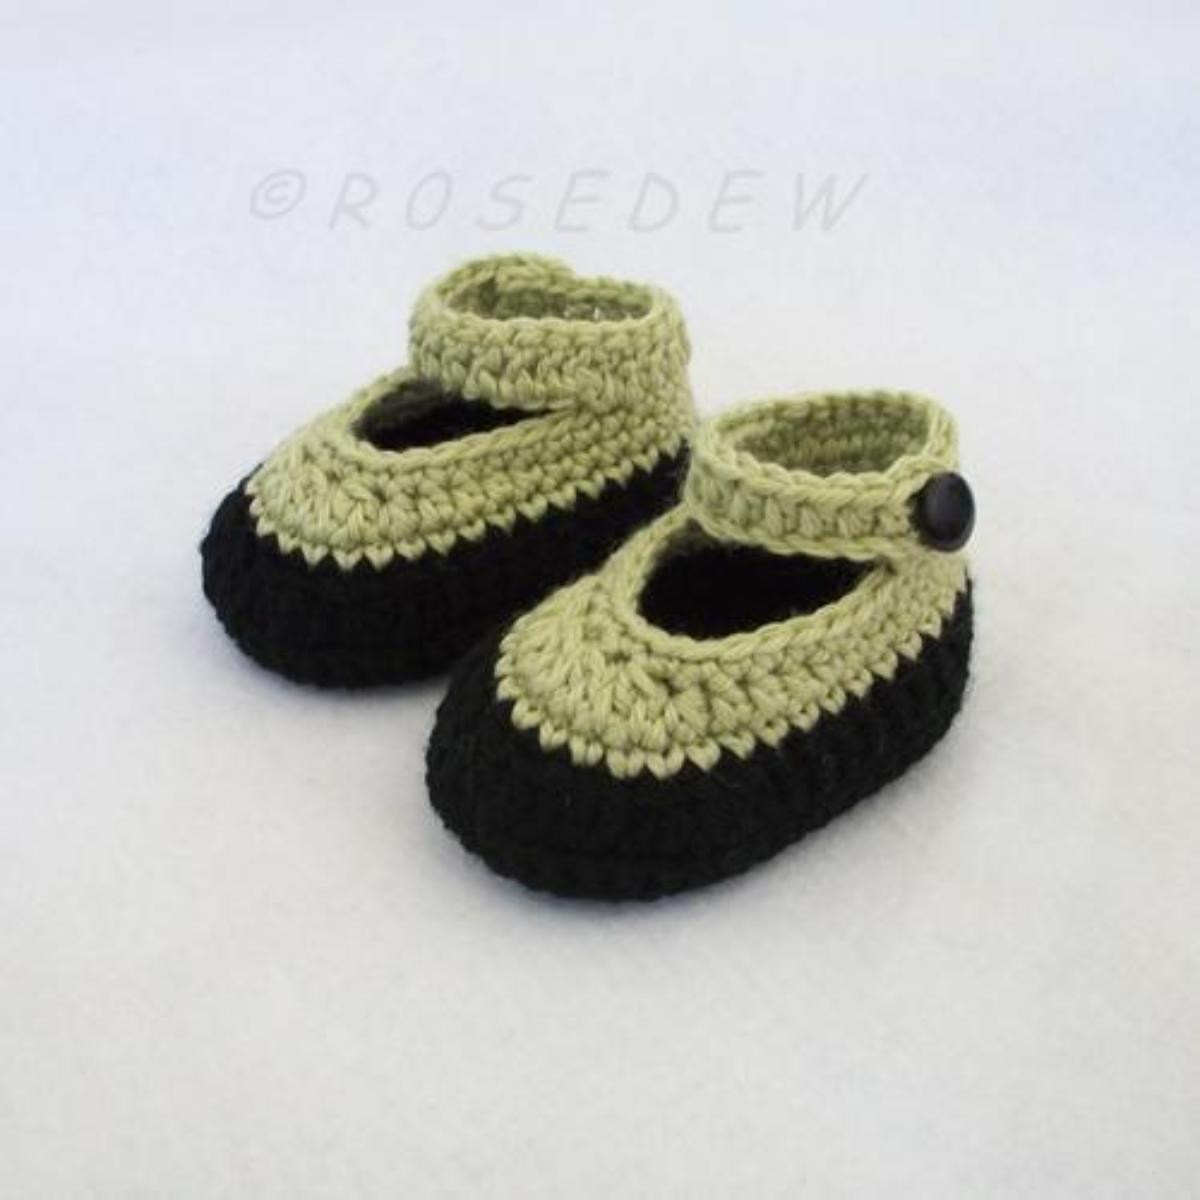 Beautiful Crochet Baby Booties Patterns for Sweet Little Feet Crochet Booties Pattern Of Unique 49 Ideas Crochet Booties Pattern